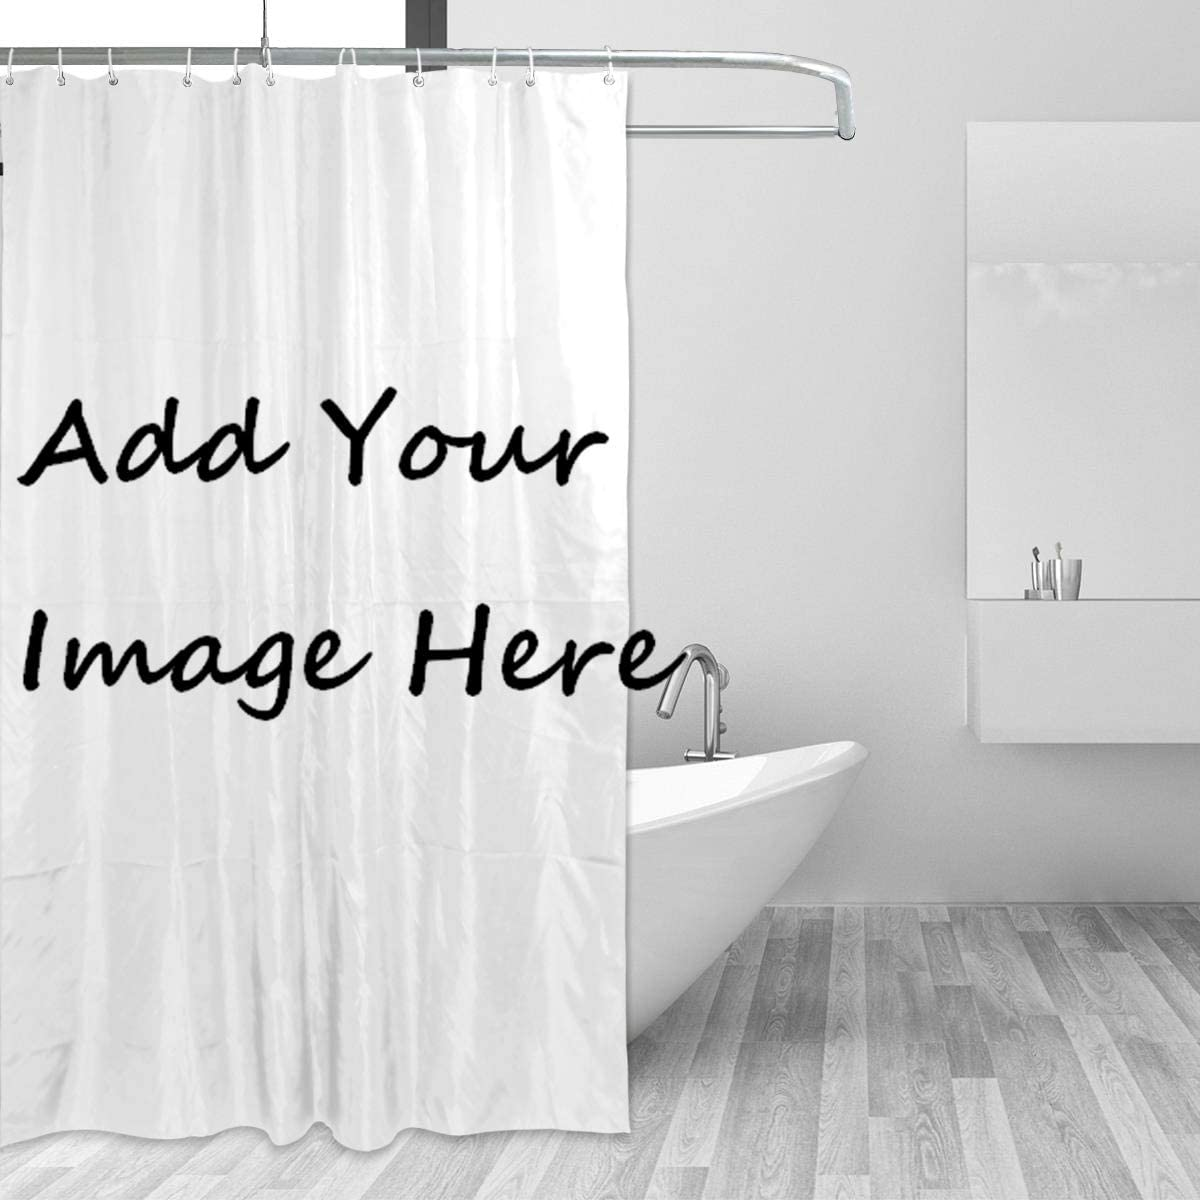 Amazon Com Suabo Custom Shower Curtain Personalized Bathroom Shower Curtain Set Add Your Own Design Image Here 72x72in Furniture Decor,Home Furniture Dining Table Designs